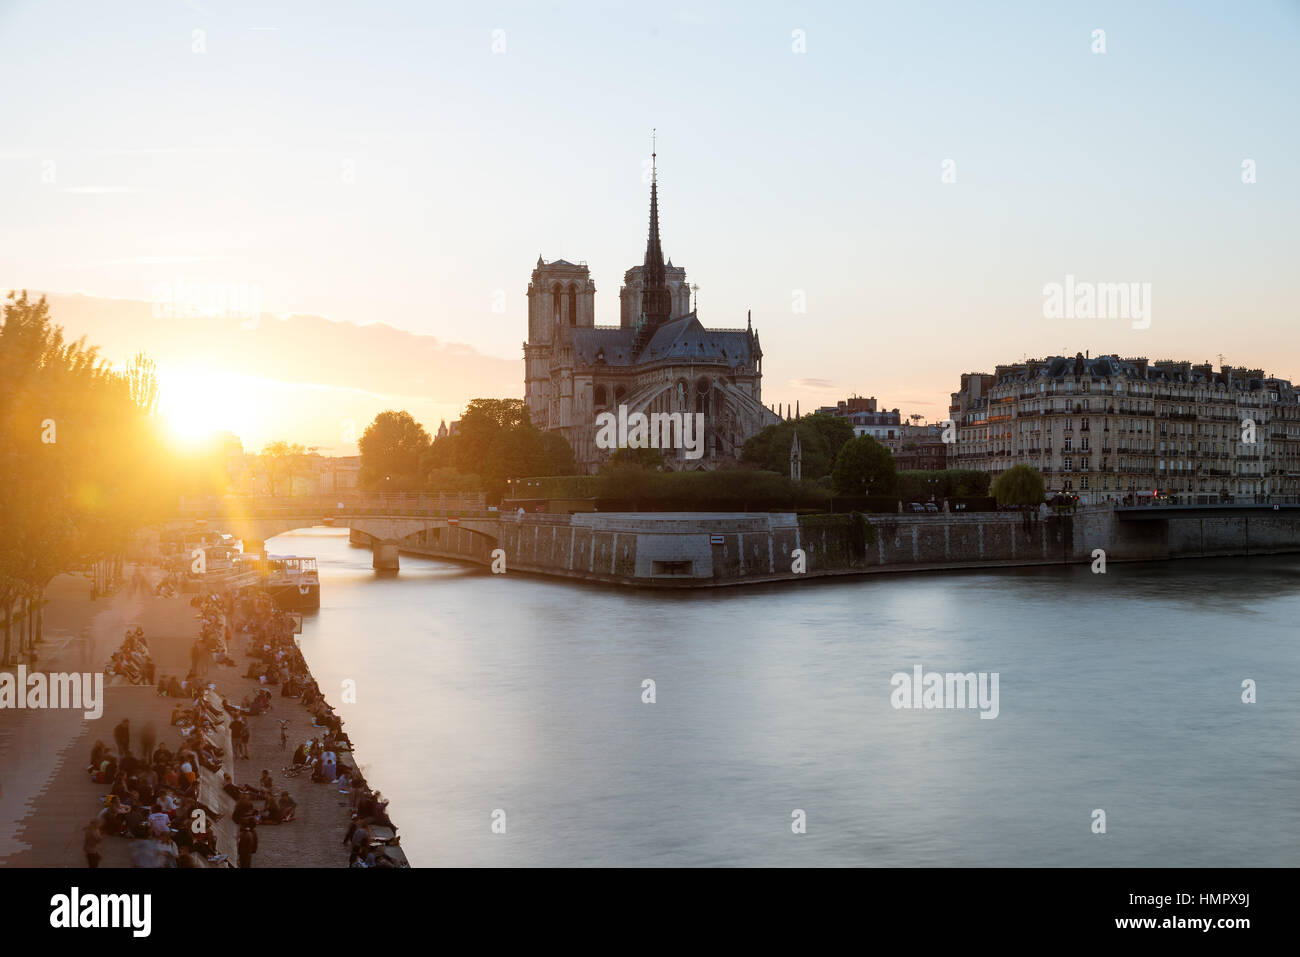 Cathedral of Notre Dame de Paris with Seine river at sunset. Paris, France. - Stock Image